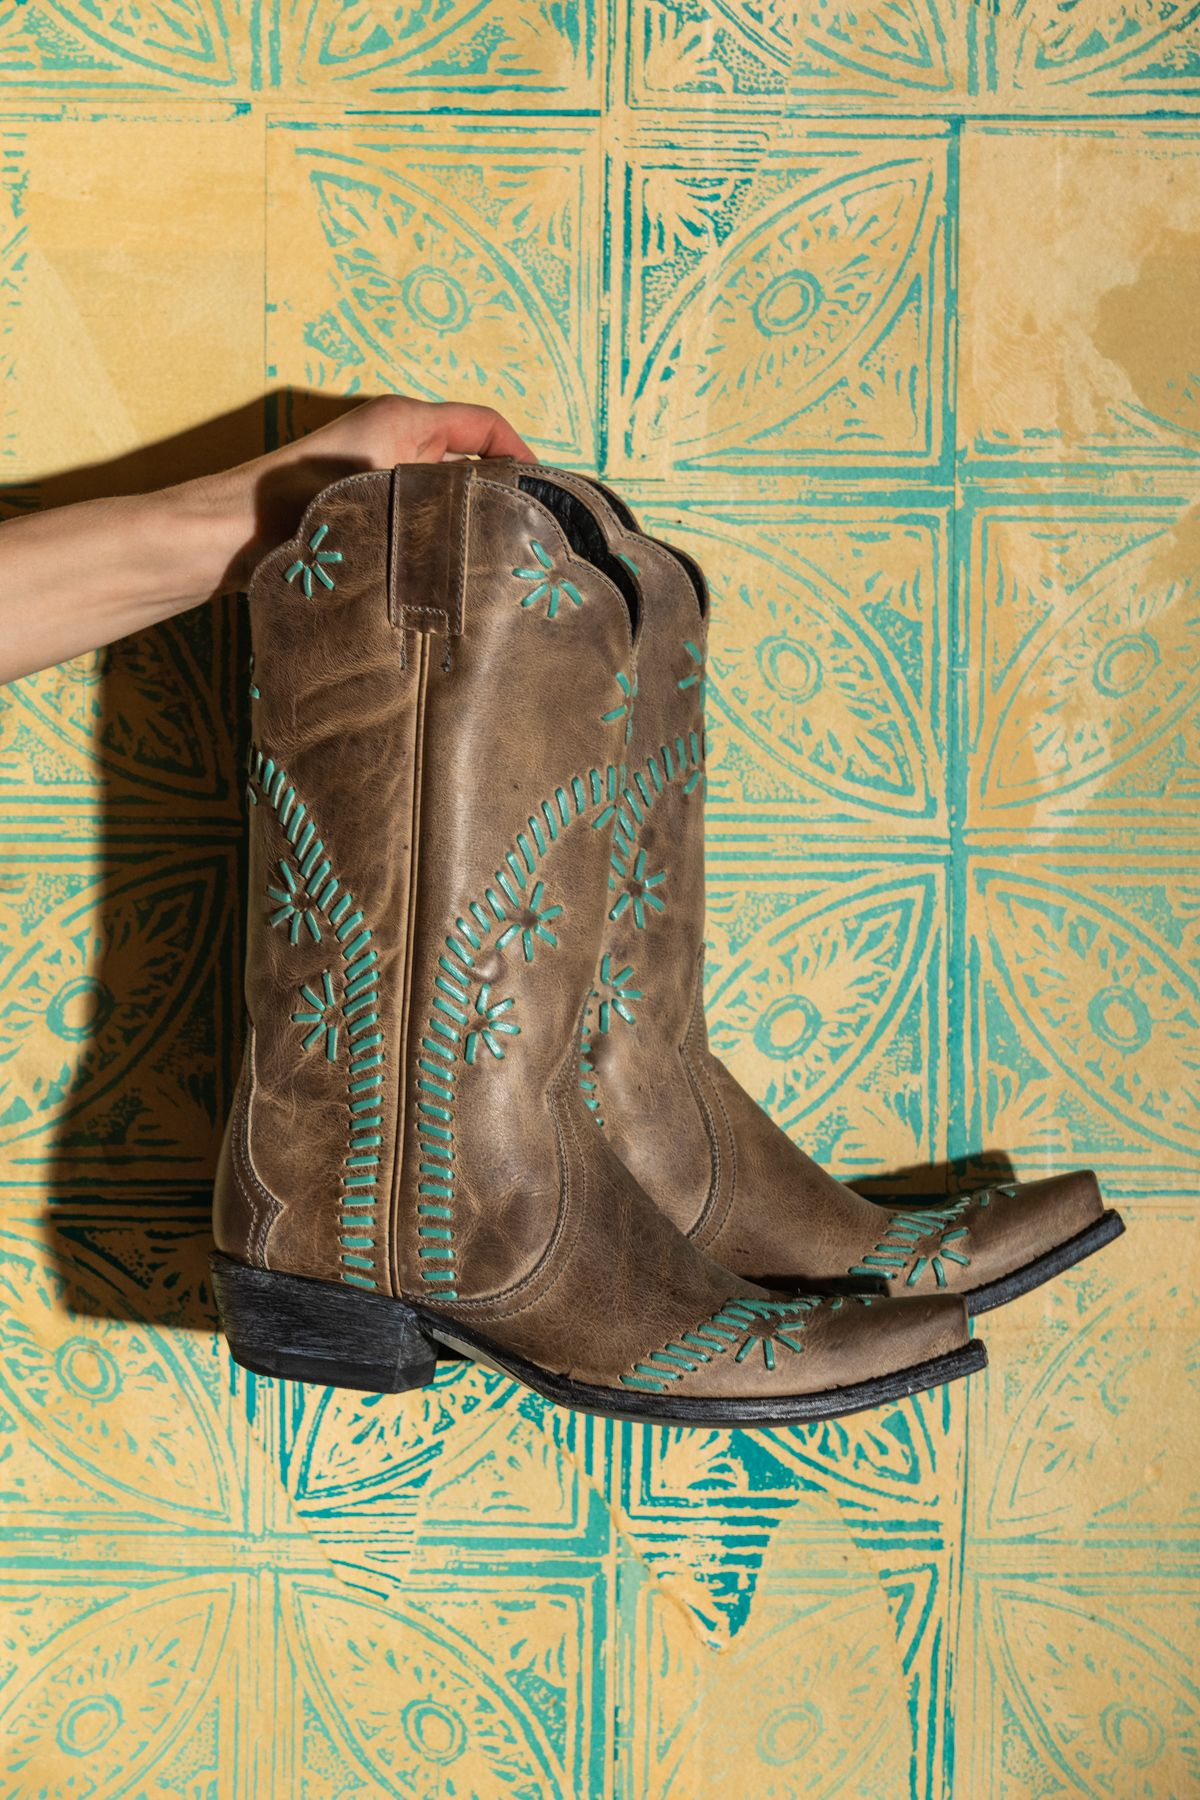 e8ad5a7d166 Wanda Western Boots - Pointed Toe in 2019 | Idyllwind Boots ...